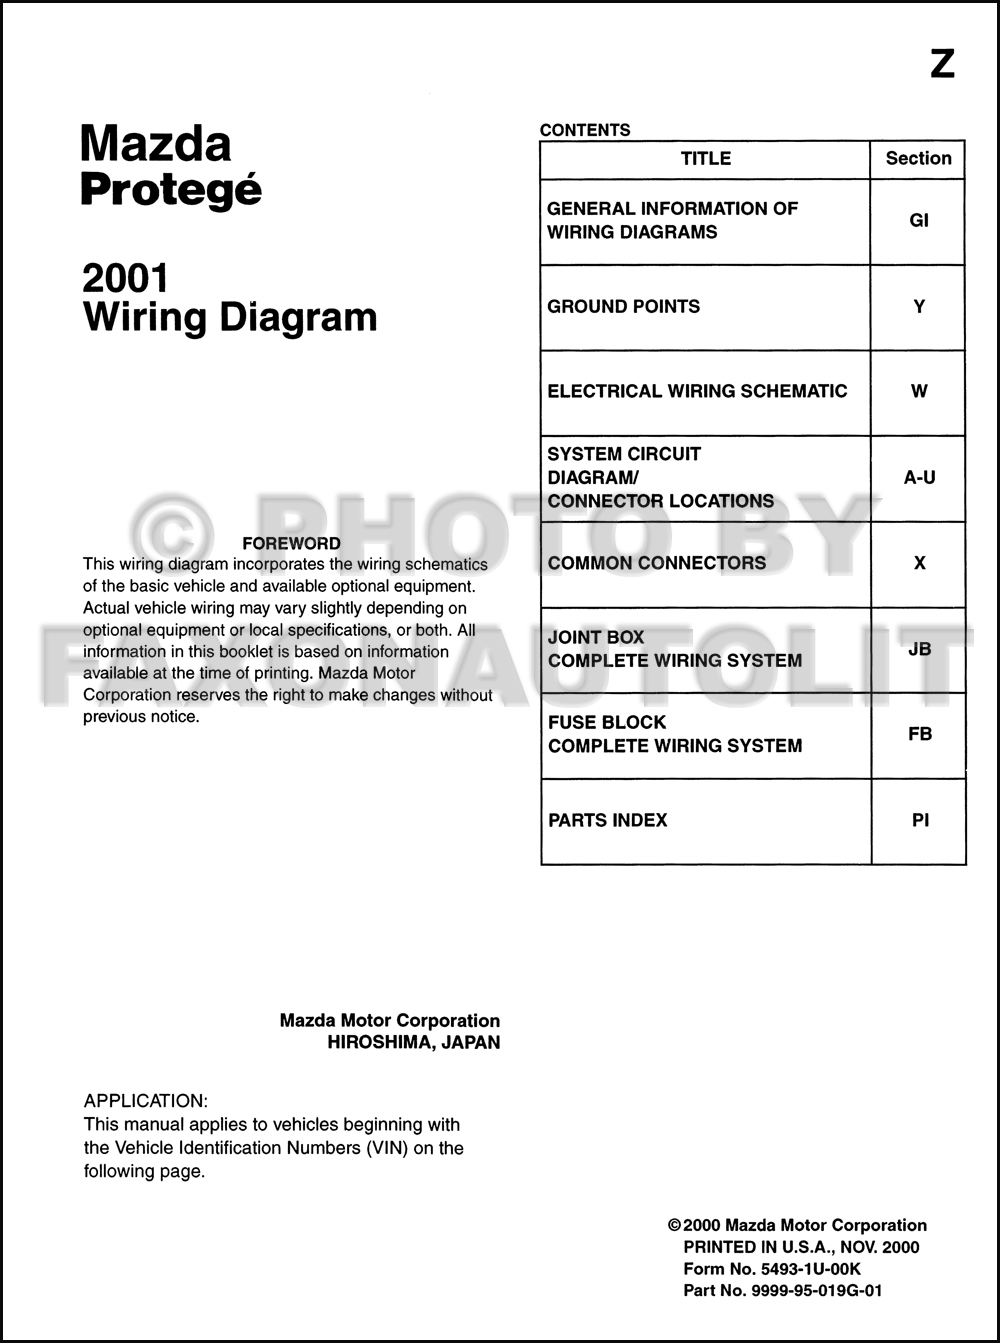 2001 Mazda Protege Wiring Diagram Manual Original 2000 Mpv Click On Thumbnail To Zoom